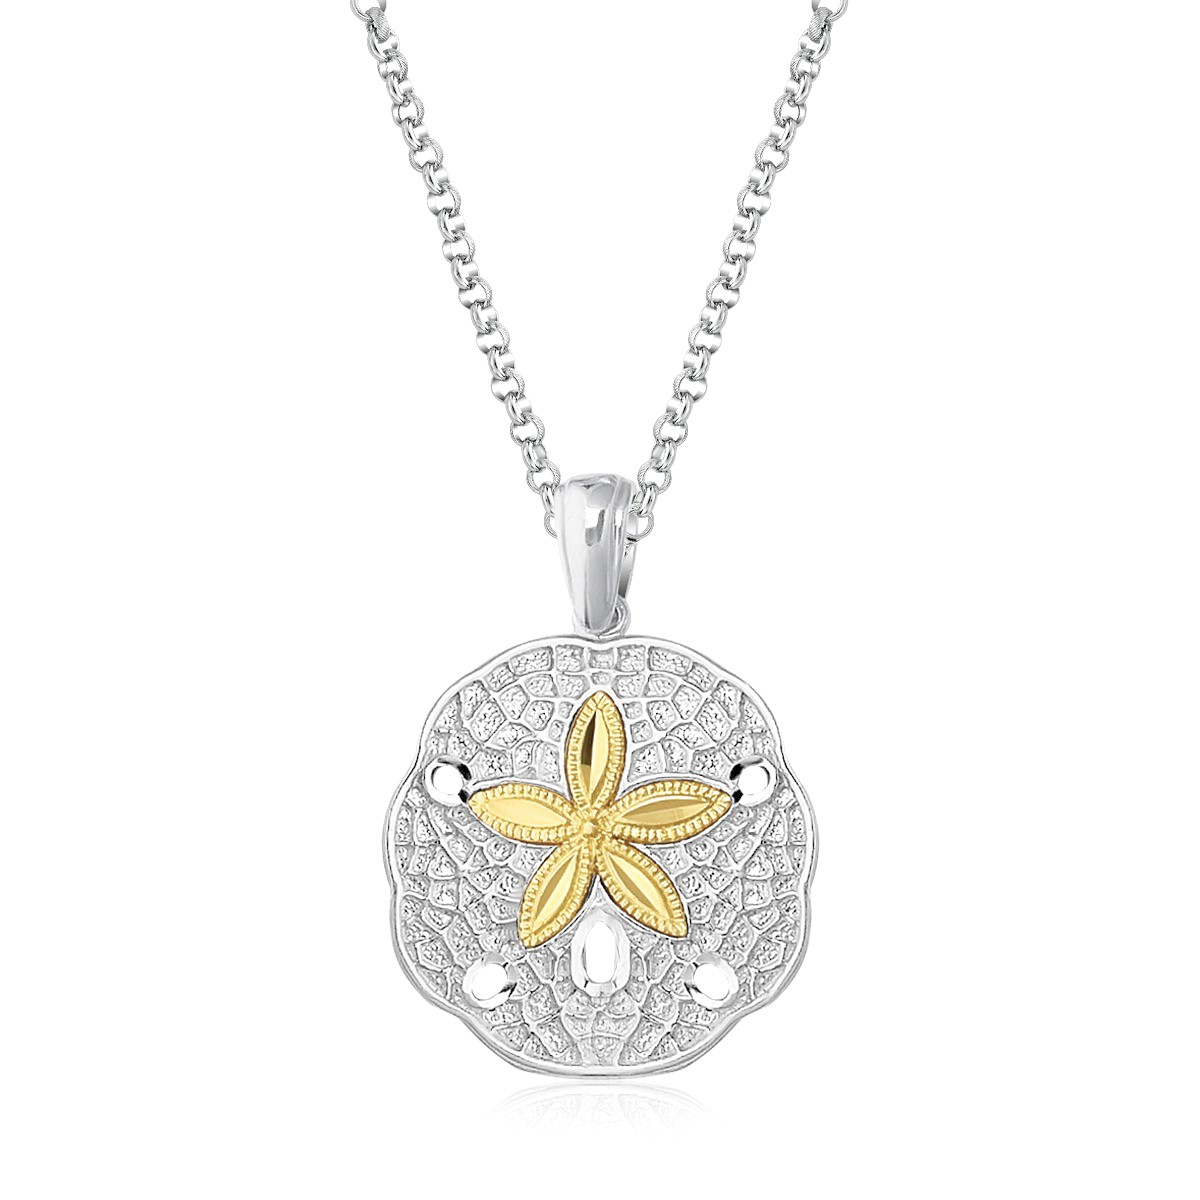 Sand dollar pendant in sterling silver and 14k yellow gold sand dollar pendant in sterling silver and 14k yellow gold richard cannon jewelry mozeypictures Choice Image